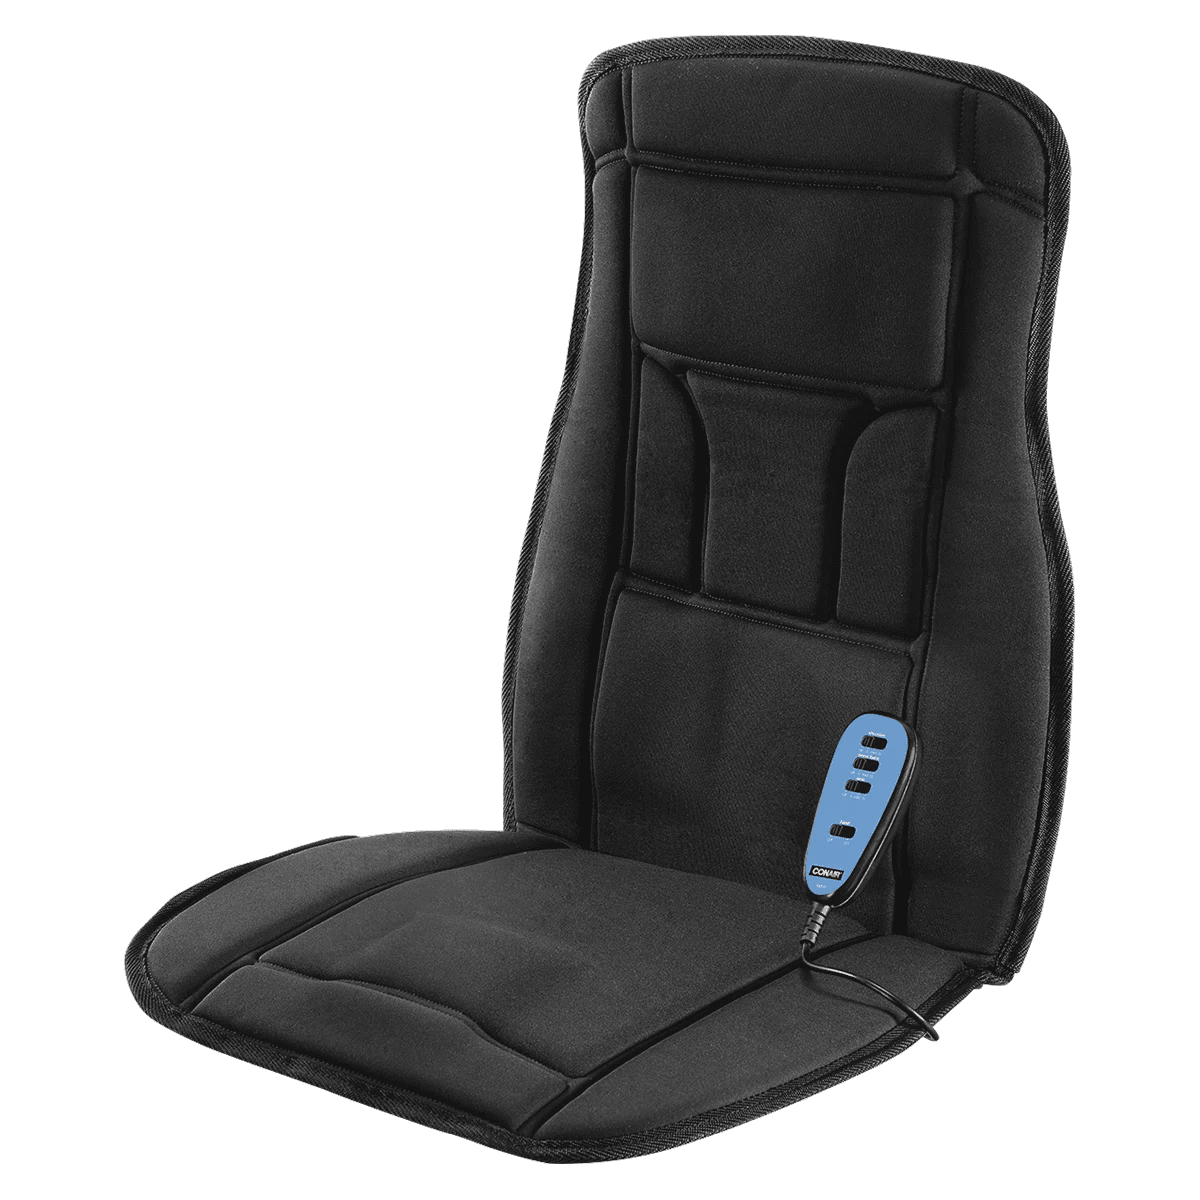 Massage & Relaxation Health Care Able 2019 Free Shipping New Safe Relax Muscle Massage Home Office Car Chair Massage Seat Electrical Massage Back Seat Cushion